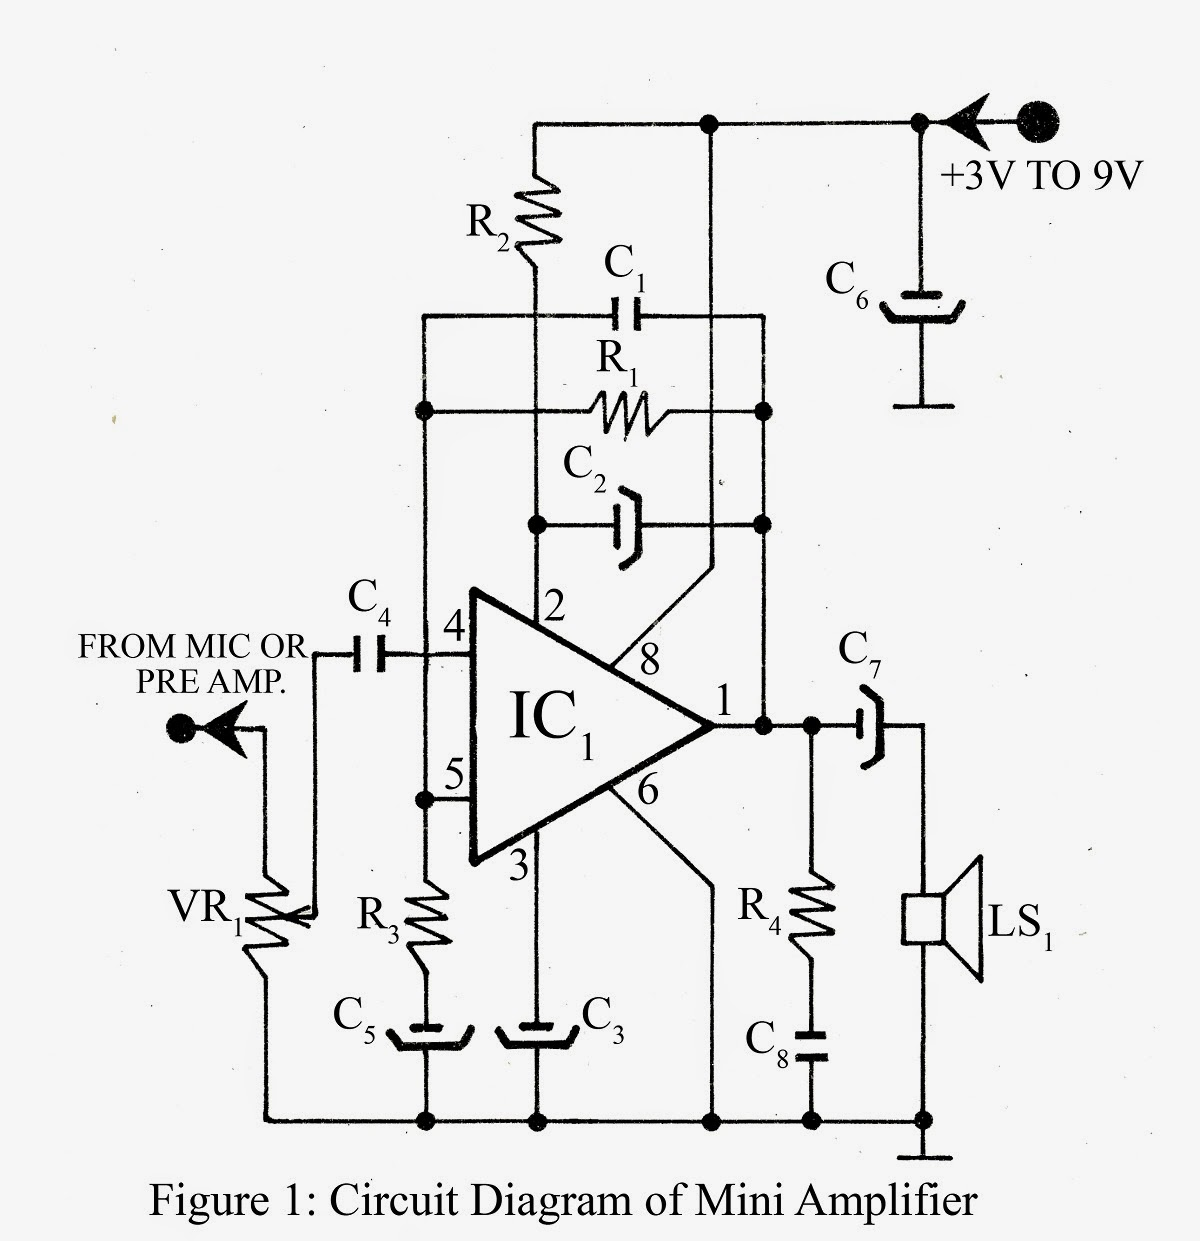 mini amplifier circuit diagram